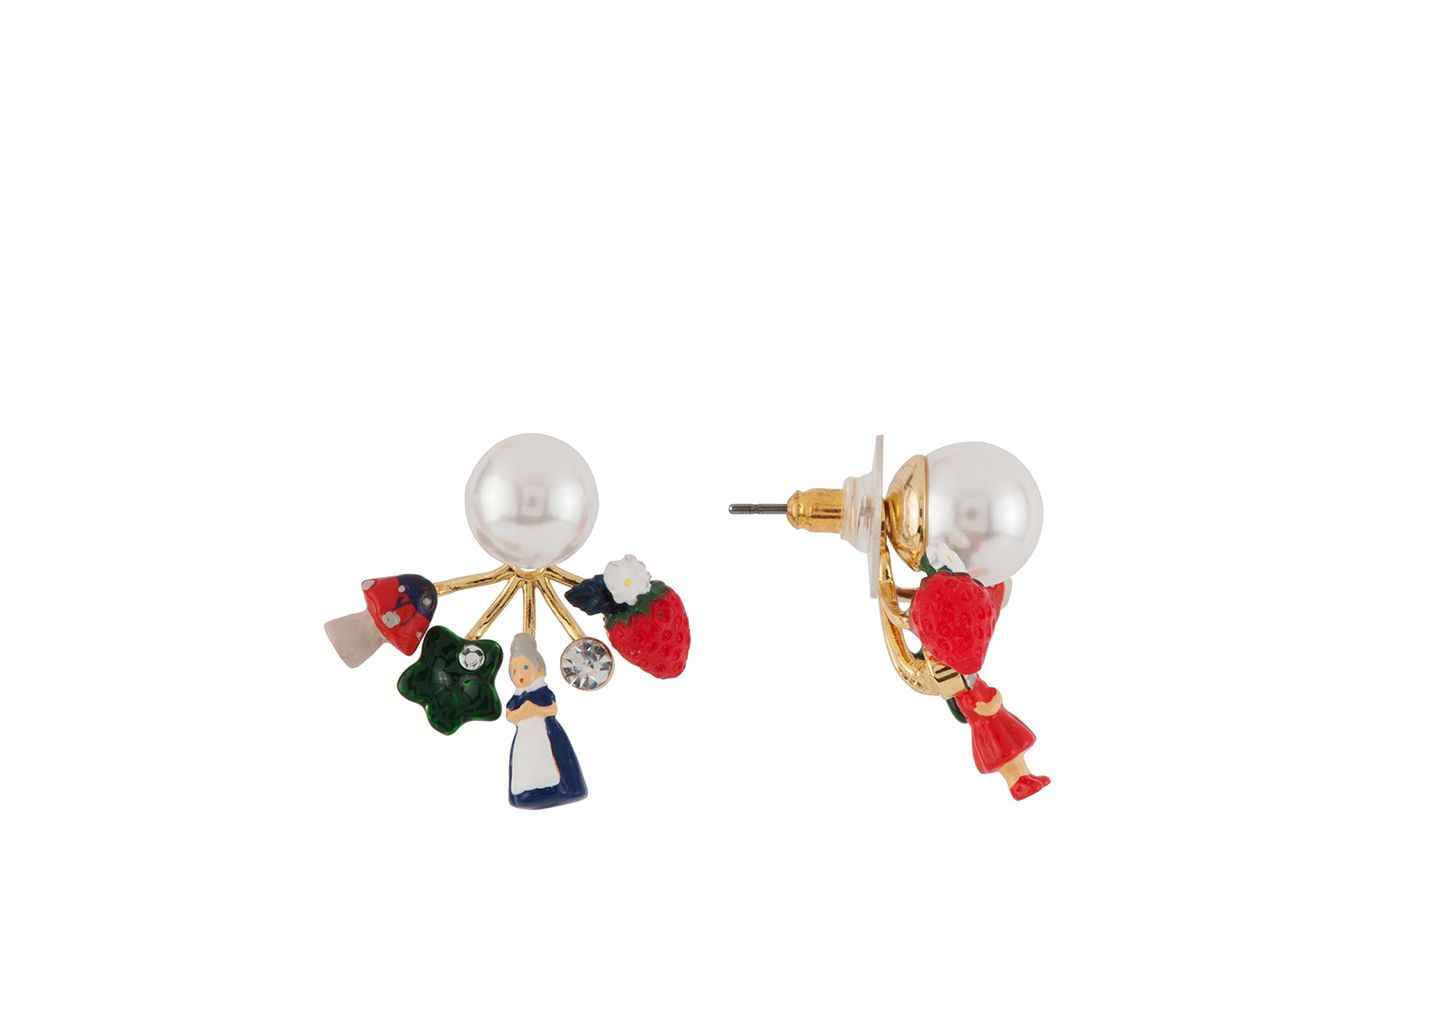 Fairytale Earrings - N2